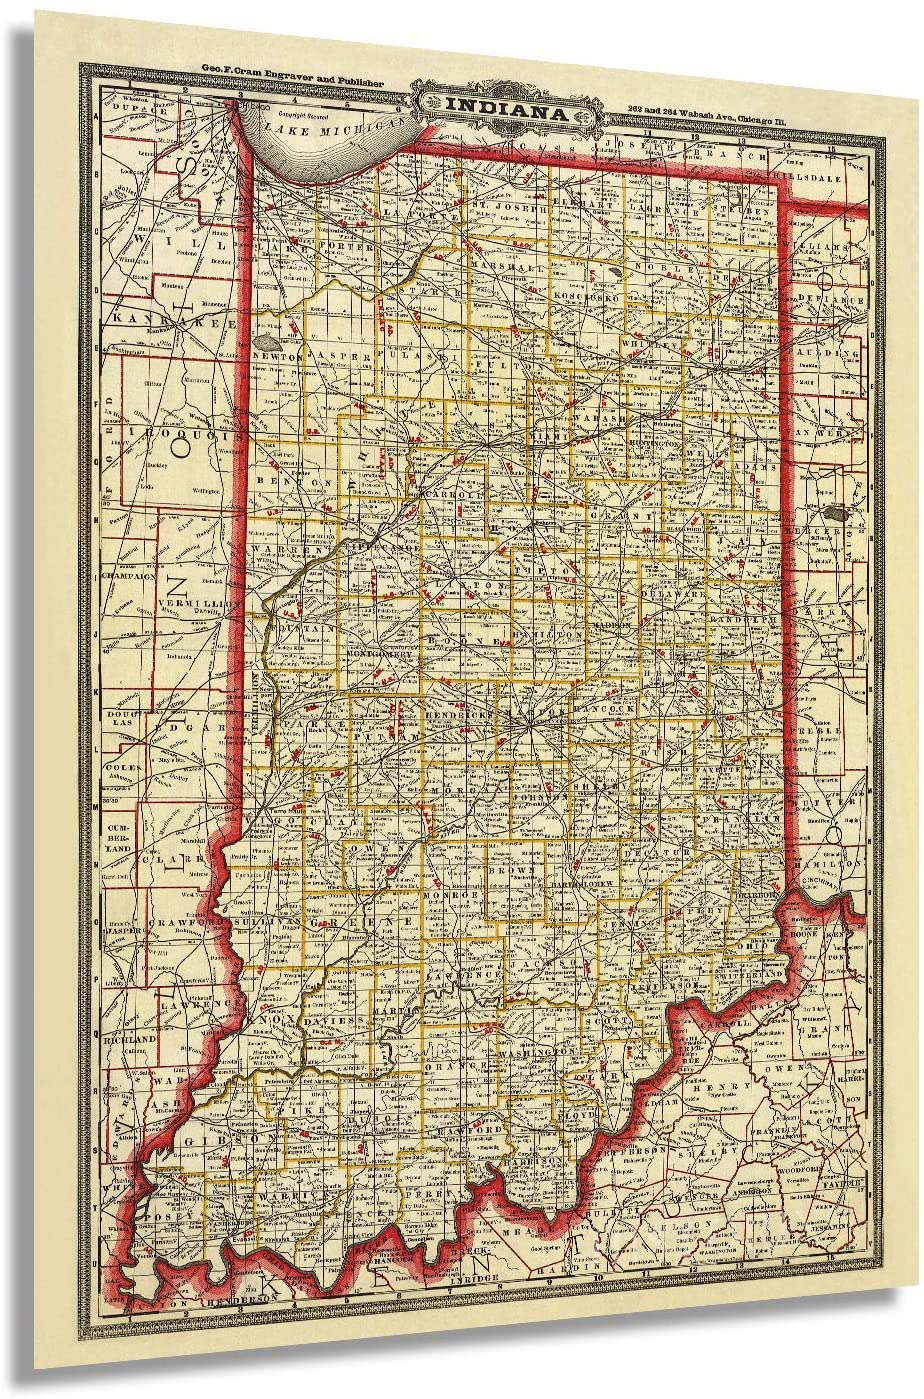 Historix 1888 Map of Indiana